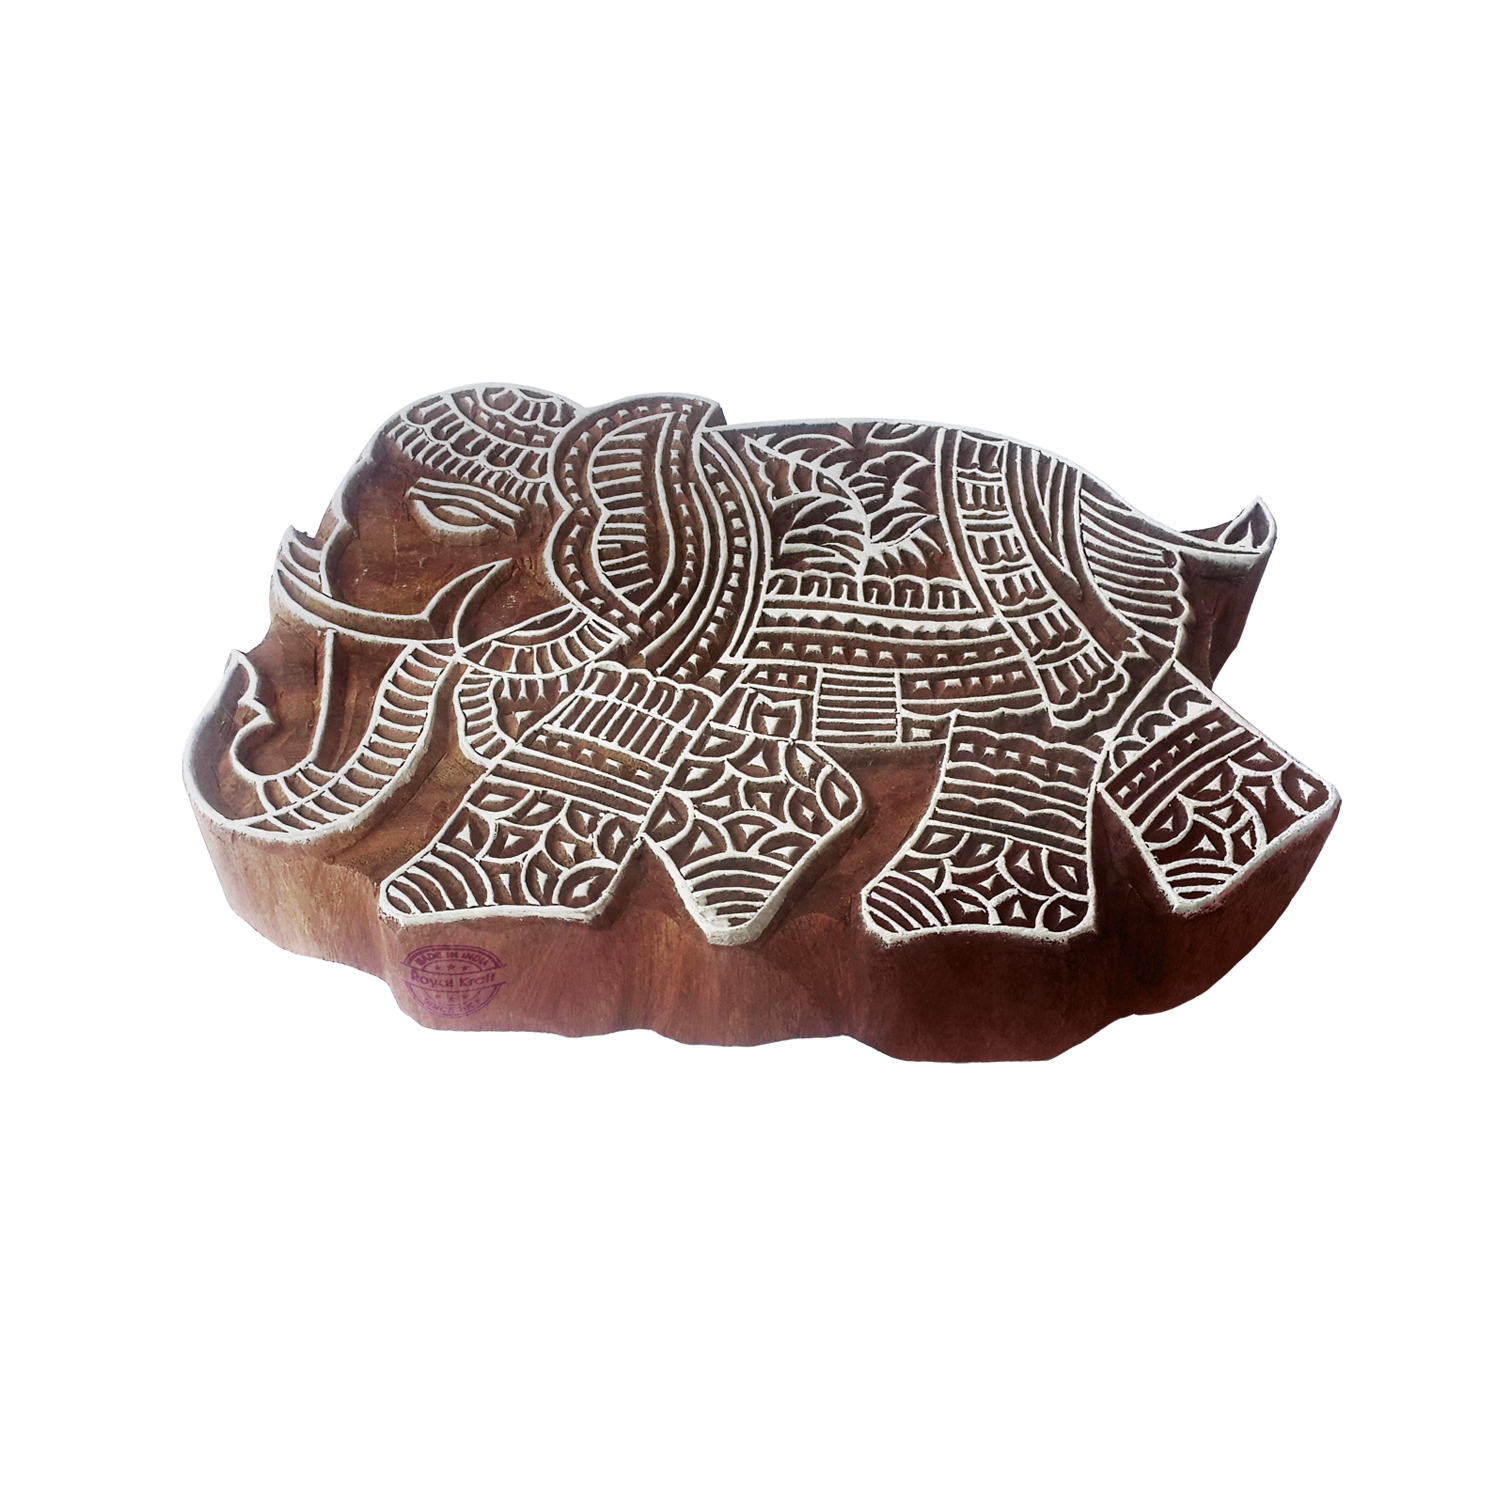 Large Animals Printing Blocks 5.5 inches